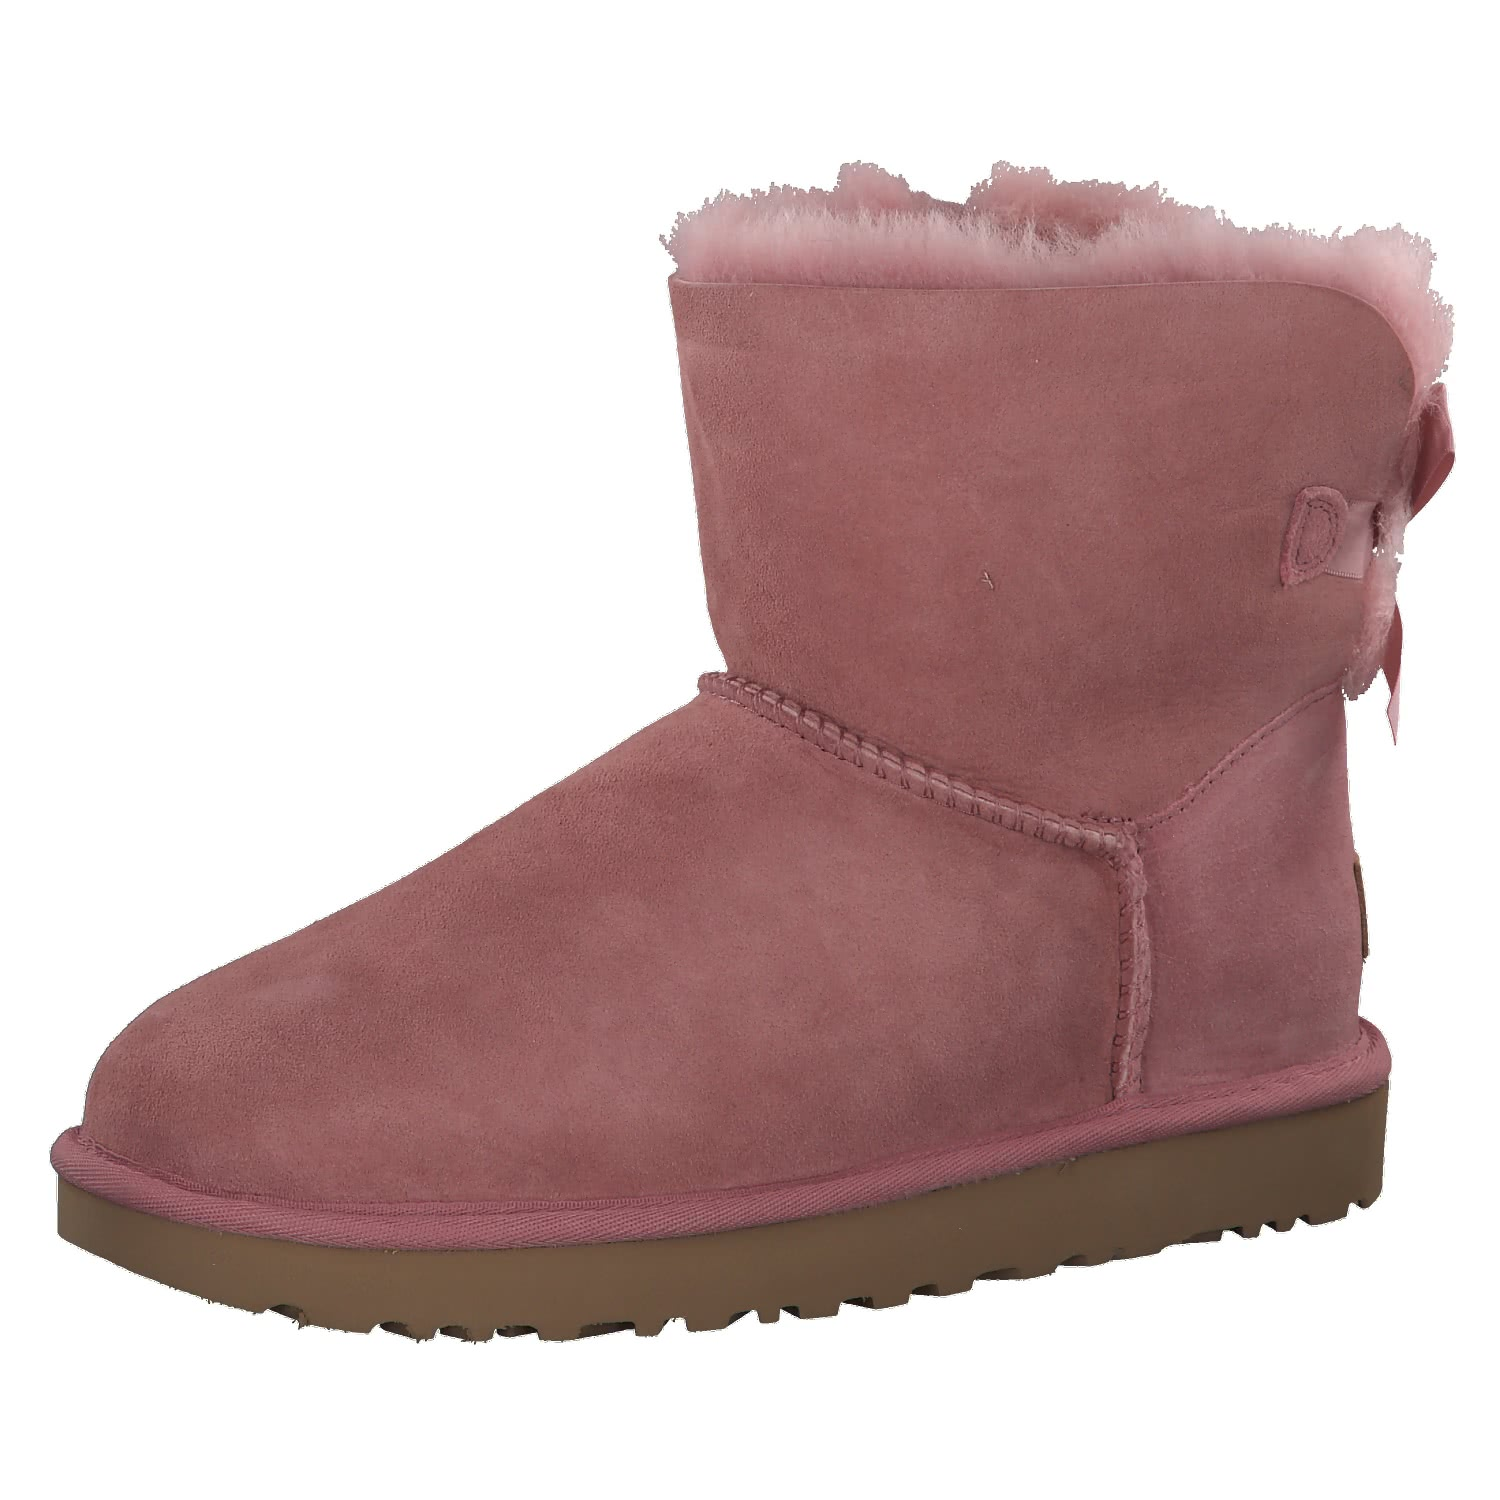 Ugg Damen Boots Mini Bailey Bow Ii 1016501 Cortexpower De